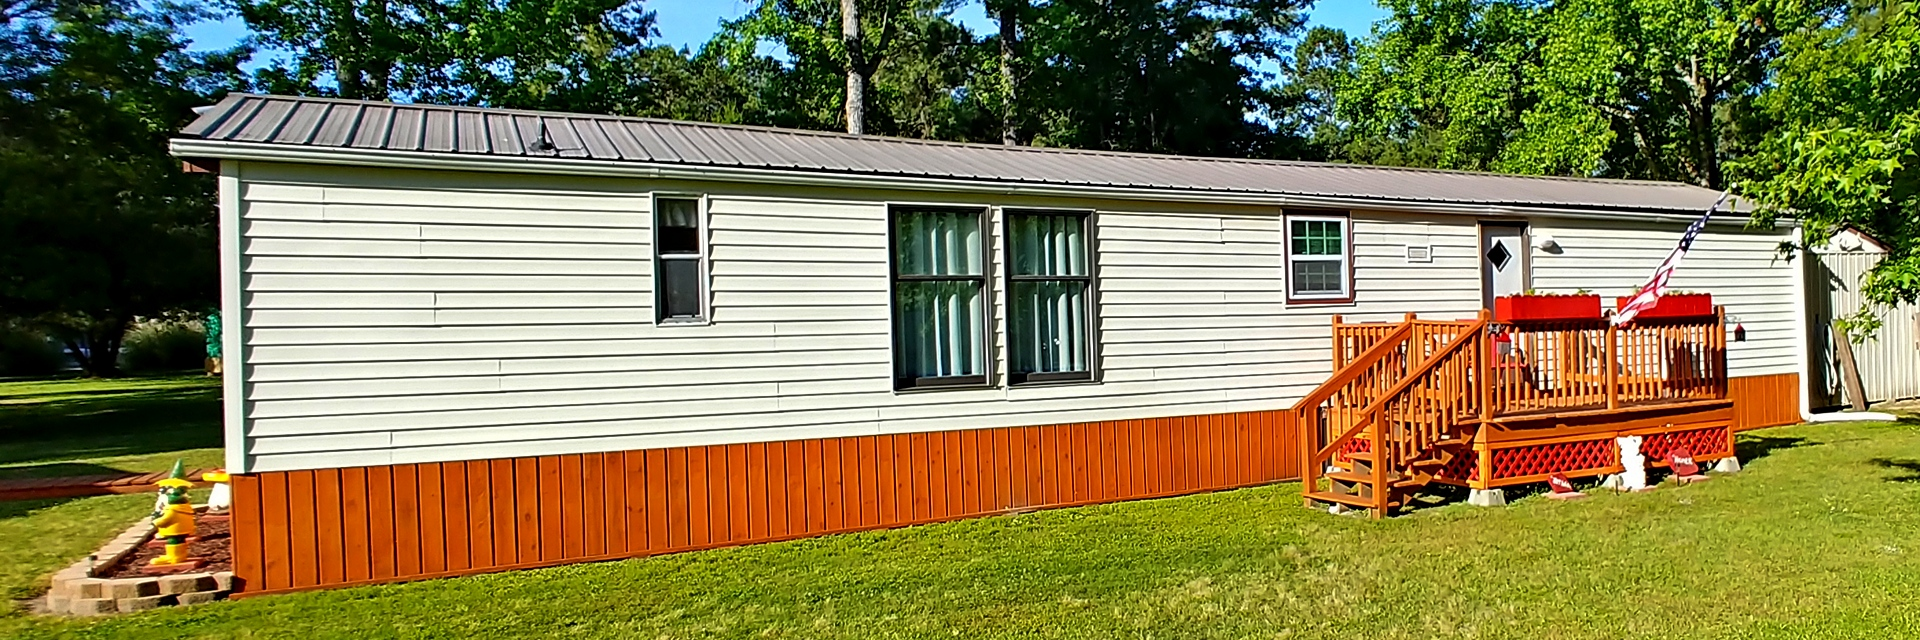 Myrtle Beach Mobile Homes